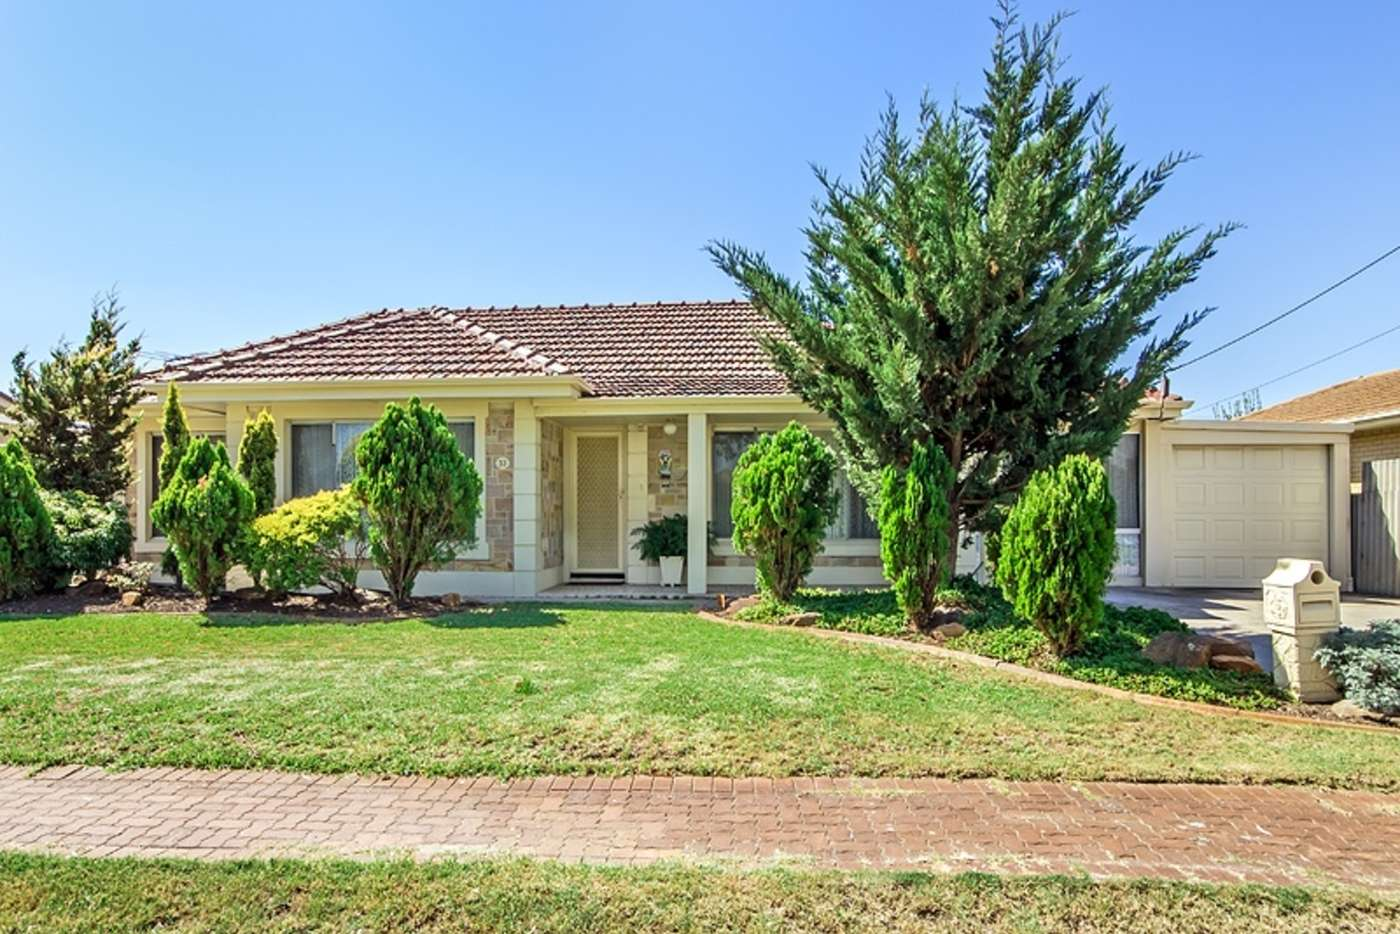 Main view of Homely house listing, 33 Sutherland Avenue, Semaphore Park SA 5019